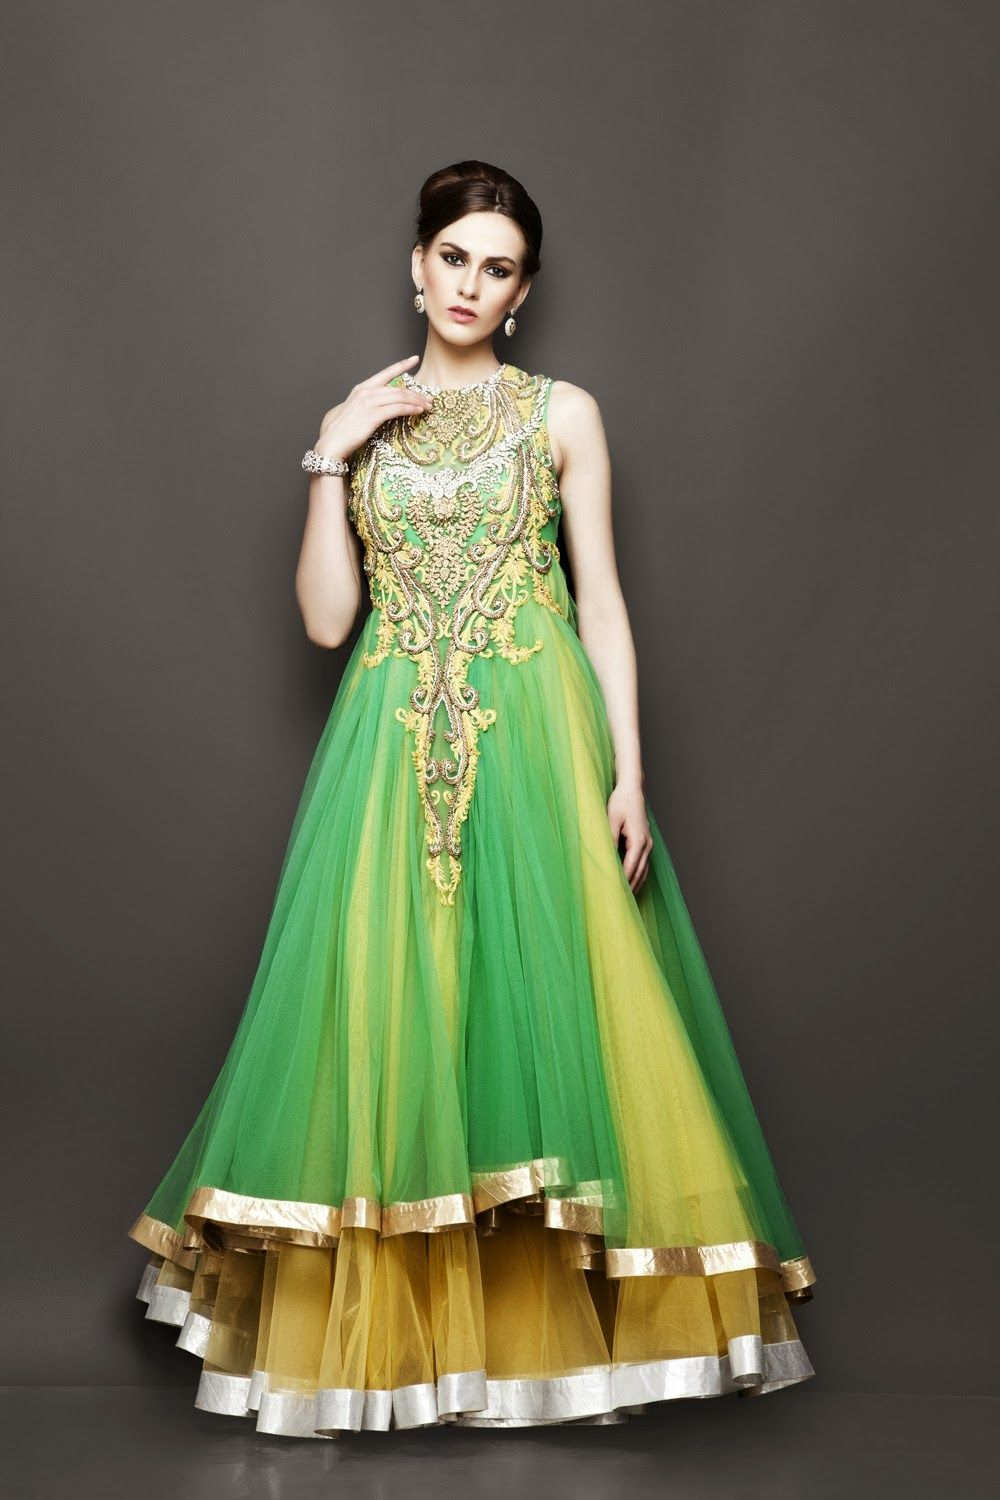 Indo western wedding dress for women  Love da hand work done in this dress  Asian bridal wear  Pinterest